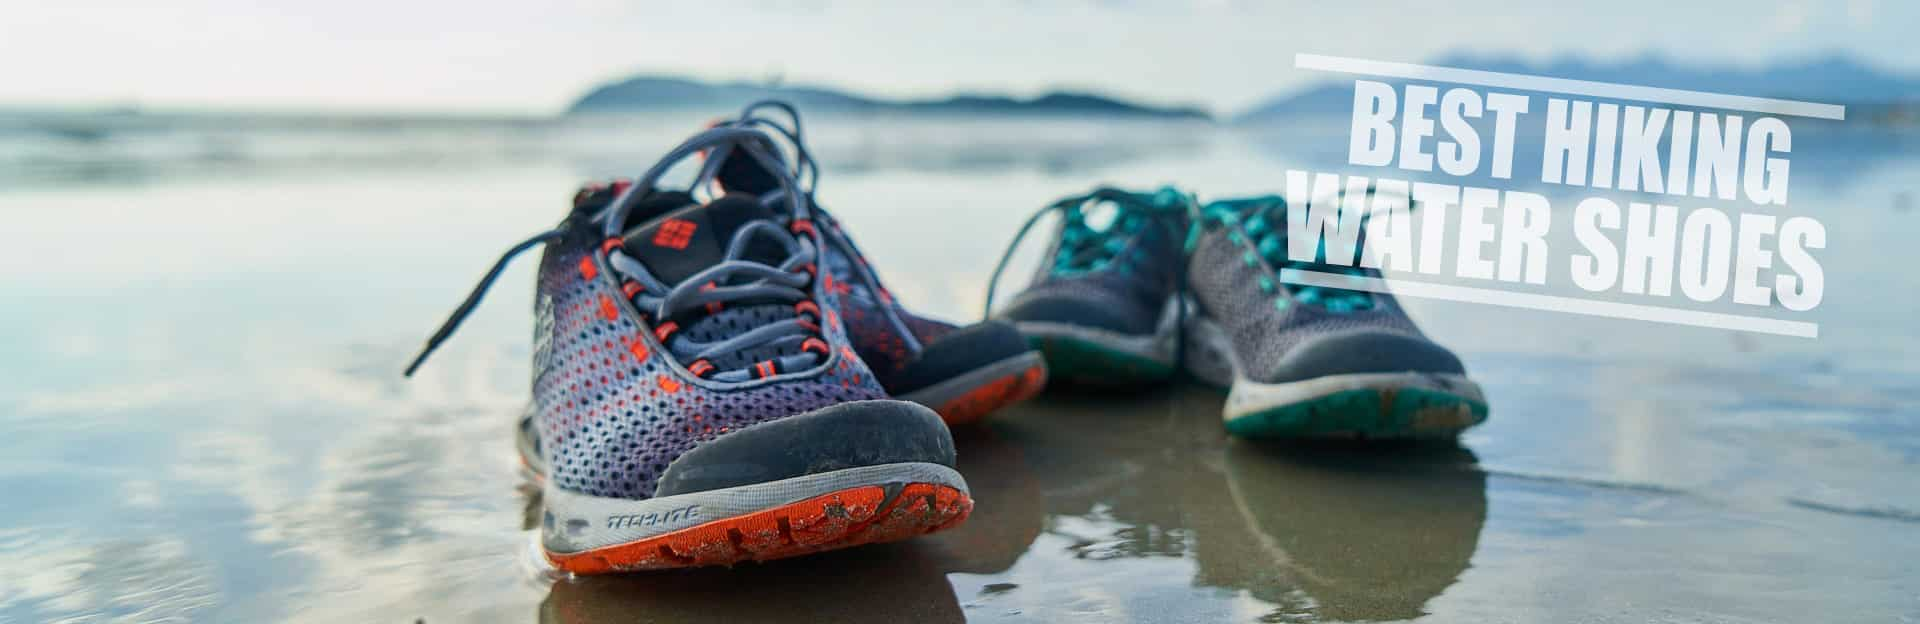 Best Water Shoes for Hiking header